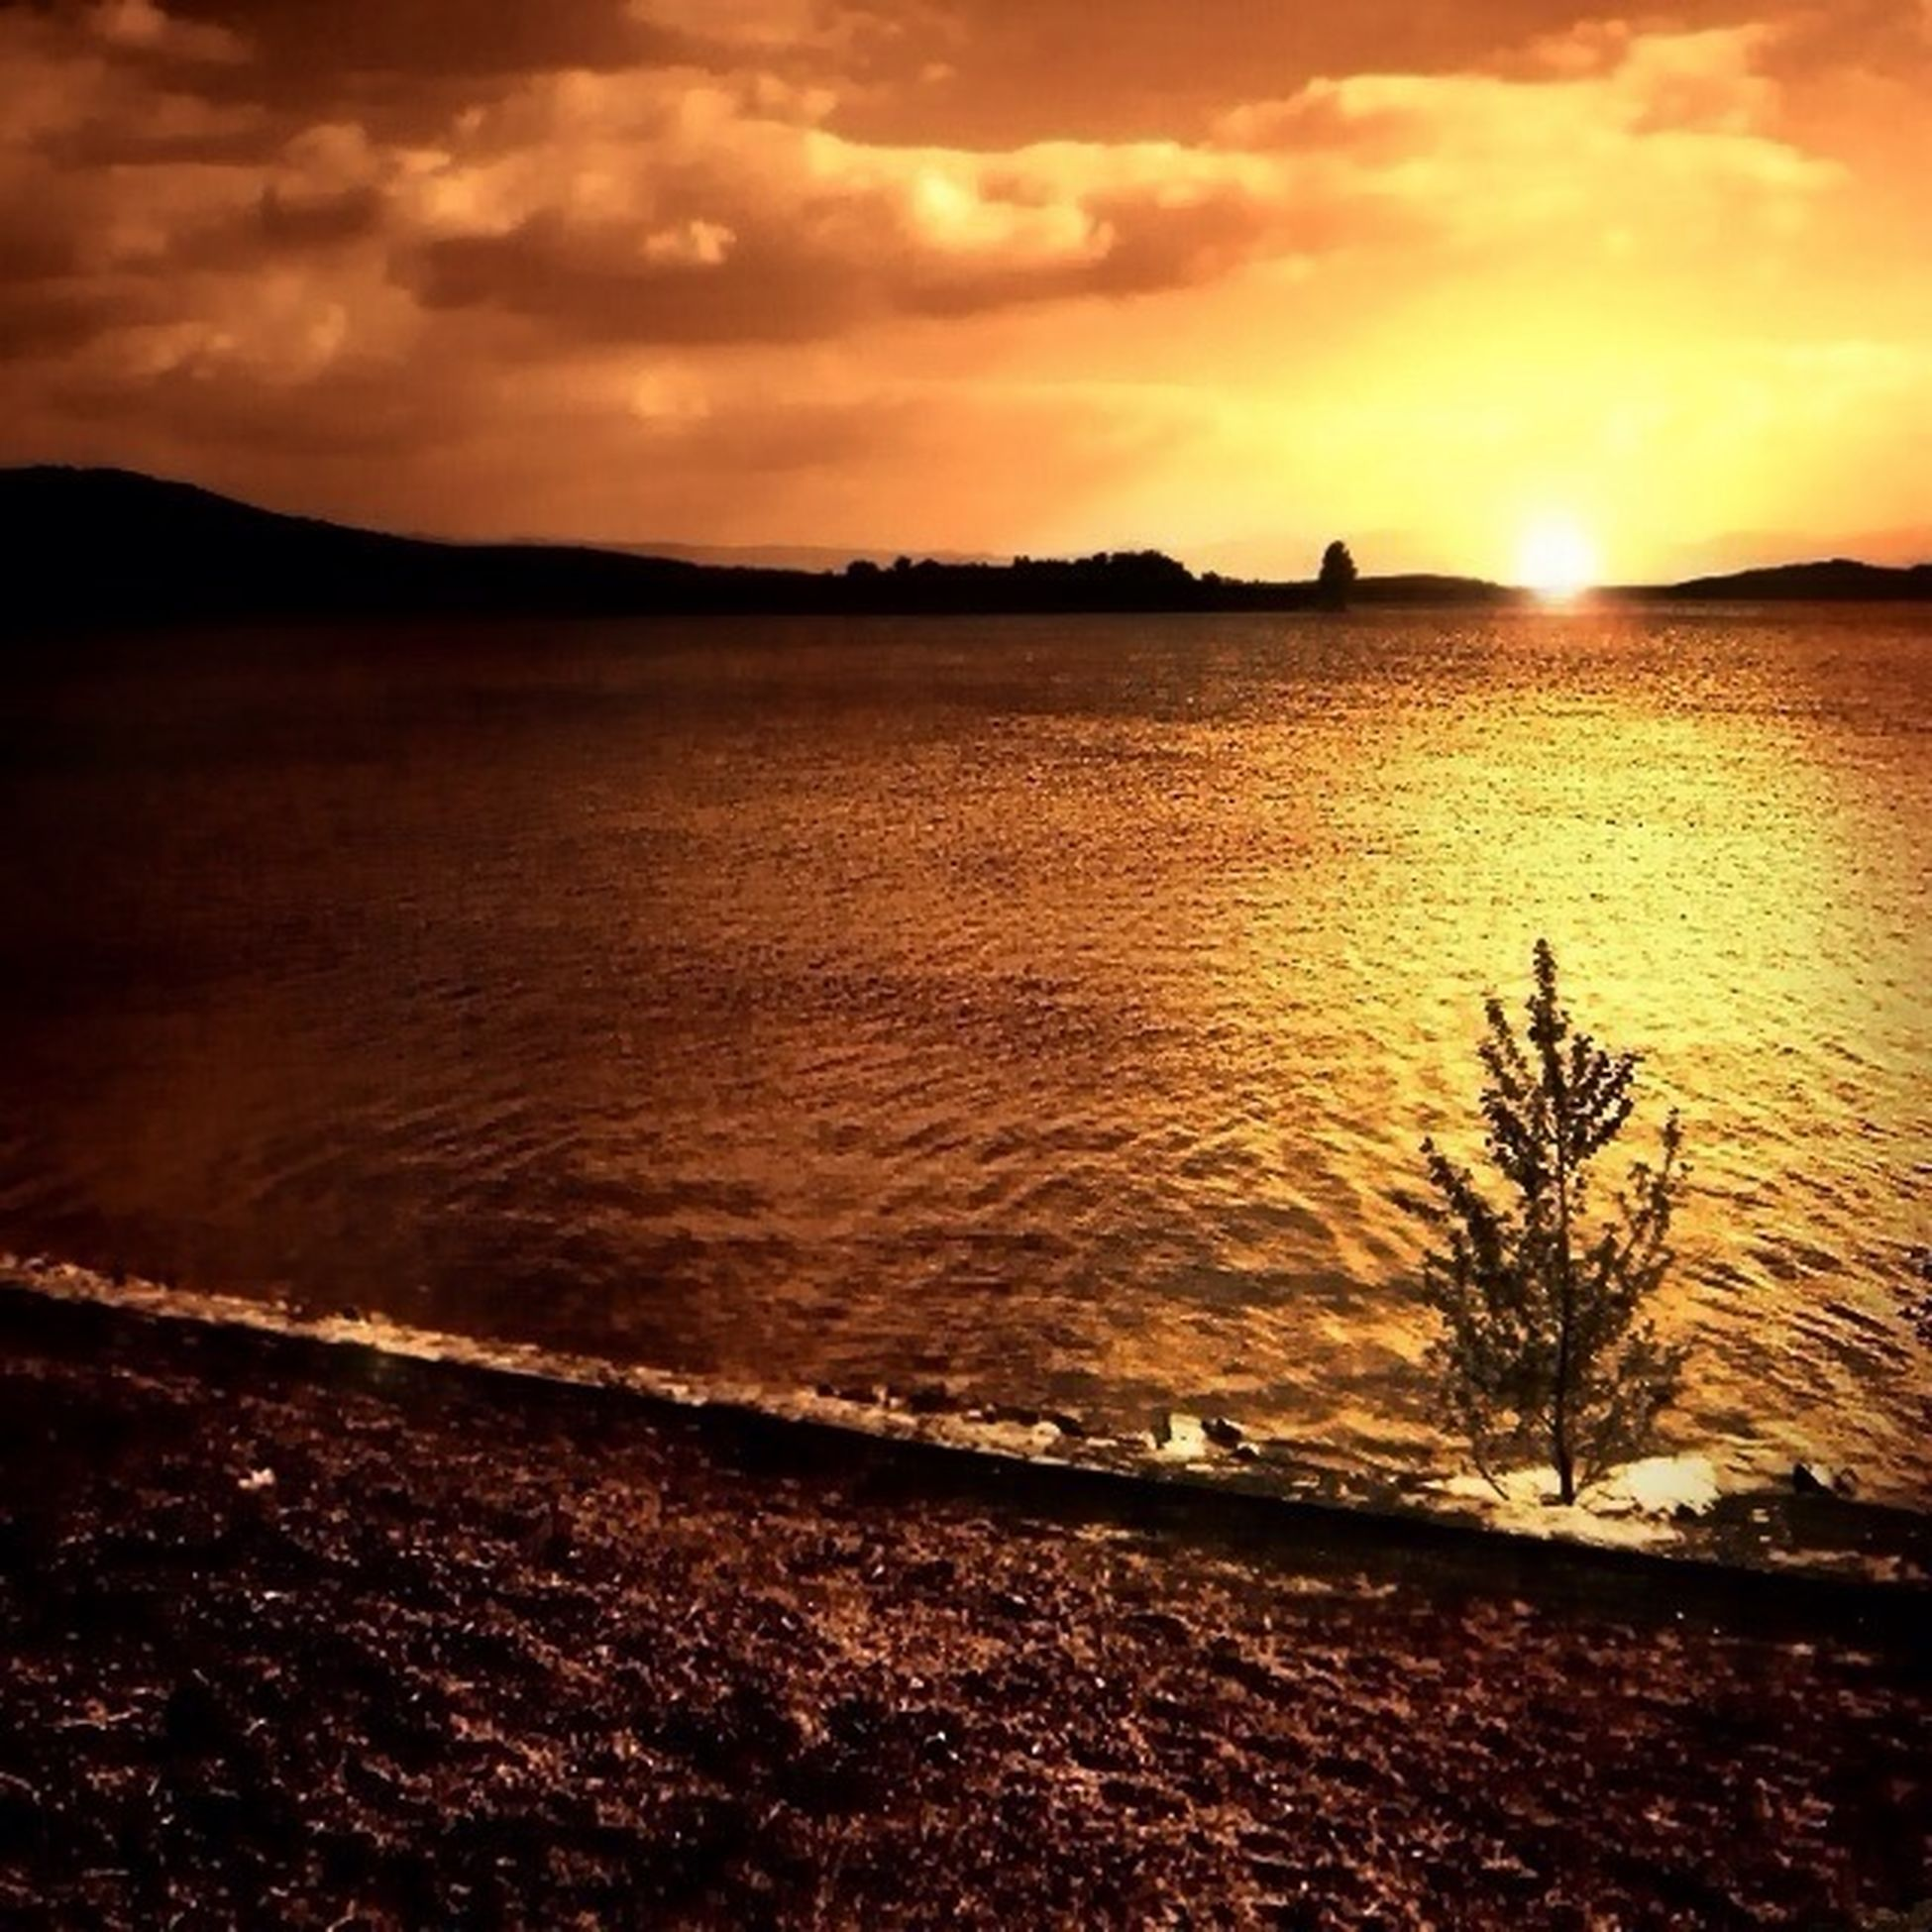 sunset, water, sky, tranquil scene, scenics, tranquility, beauty in nature, sun, orange color, cloud - sky, nature, idyllic, lake, reflection, sea, sunlight, cloud, silhouette, river, non-urban scene